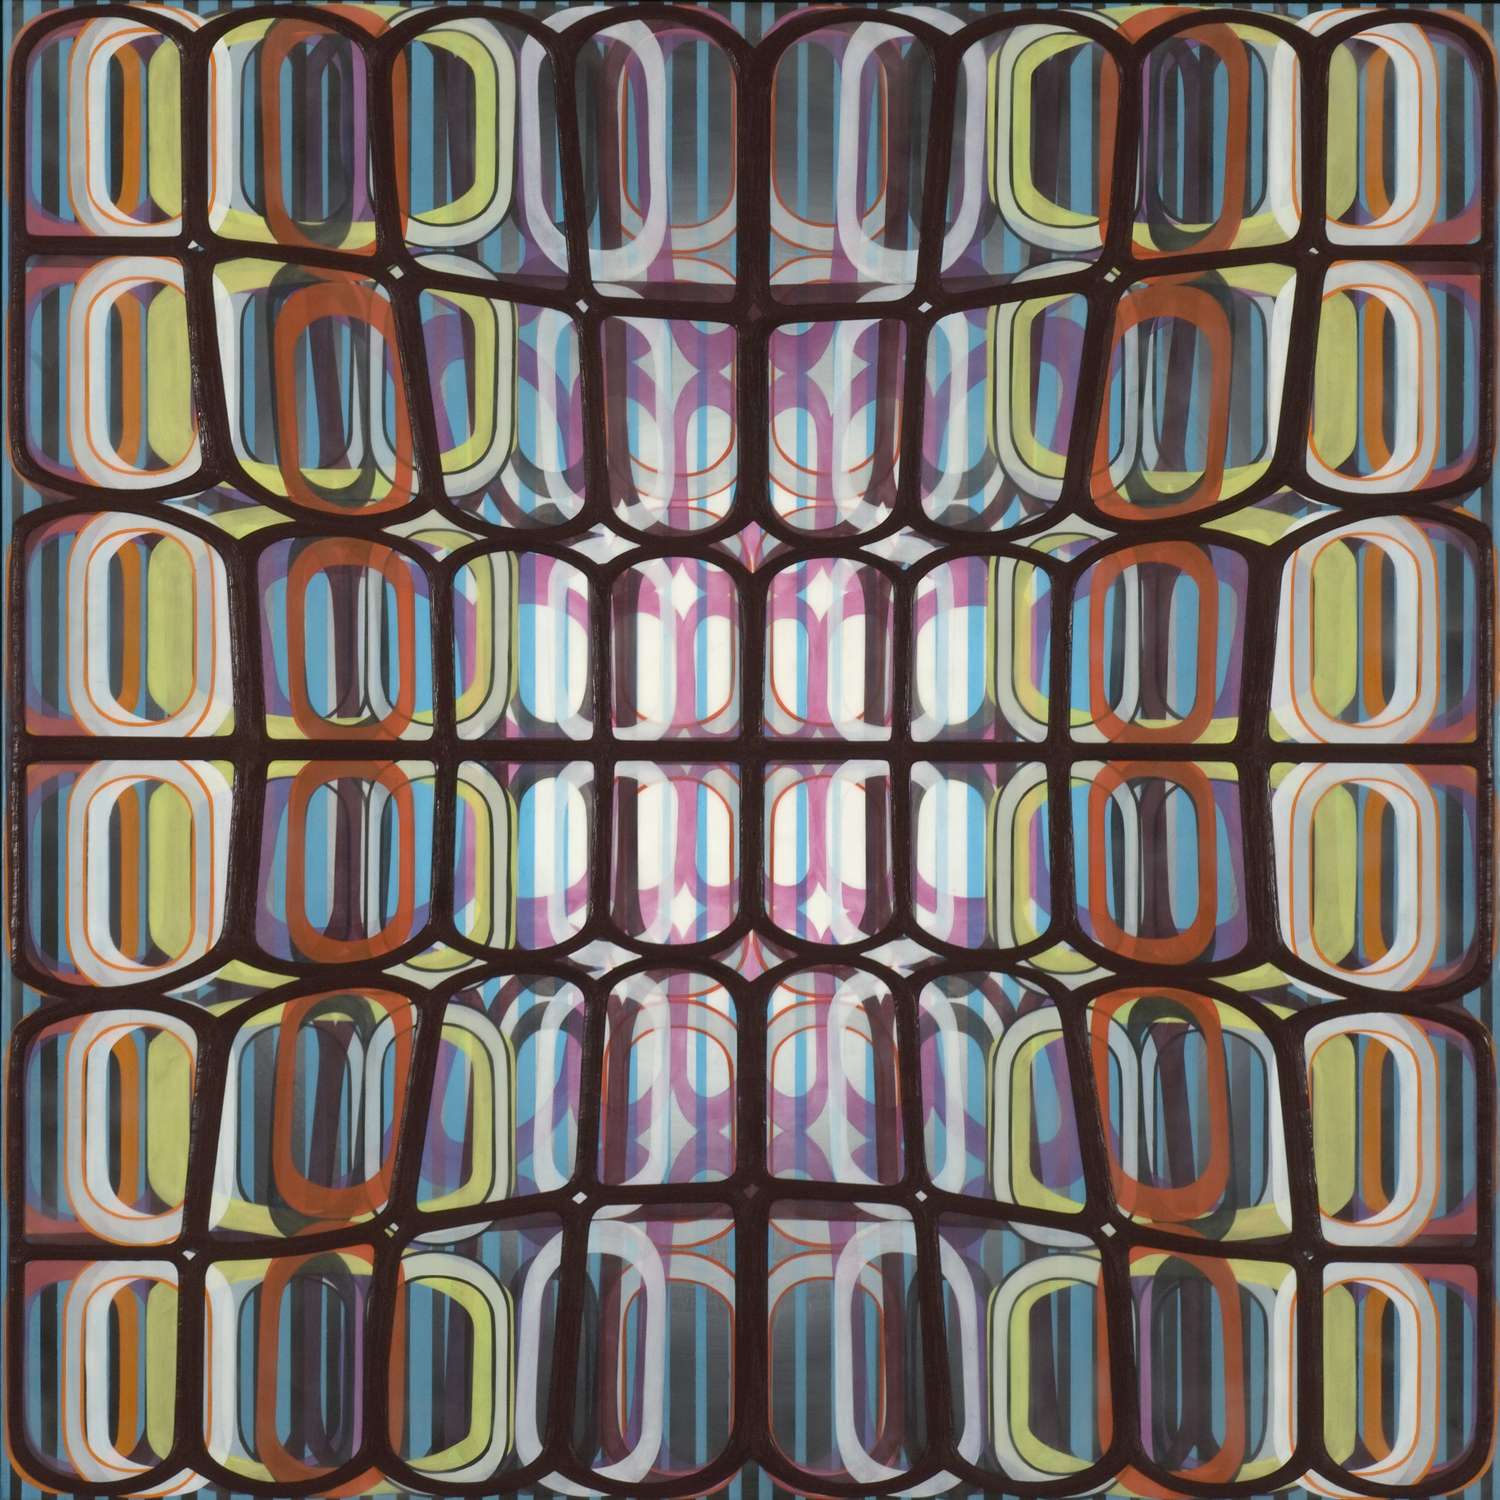 """Identical/Variation (pink, blue, green, black) #2, 2007 Oil and encaustic on panel 36"""" x 36"""" x 2"""""""